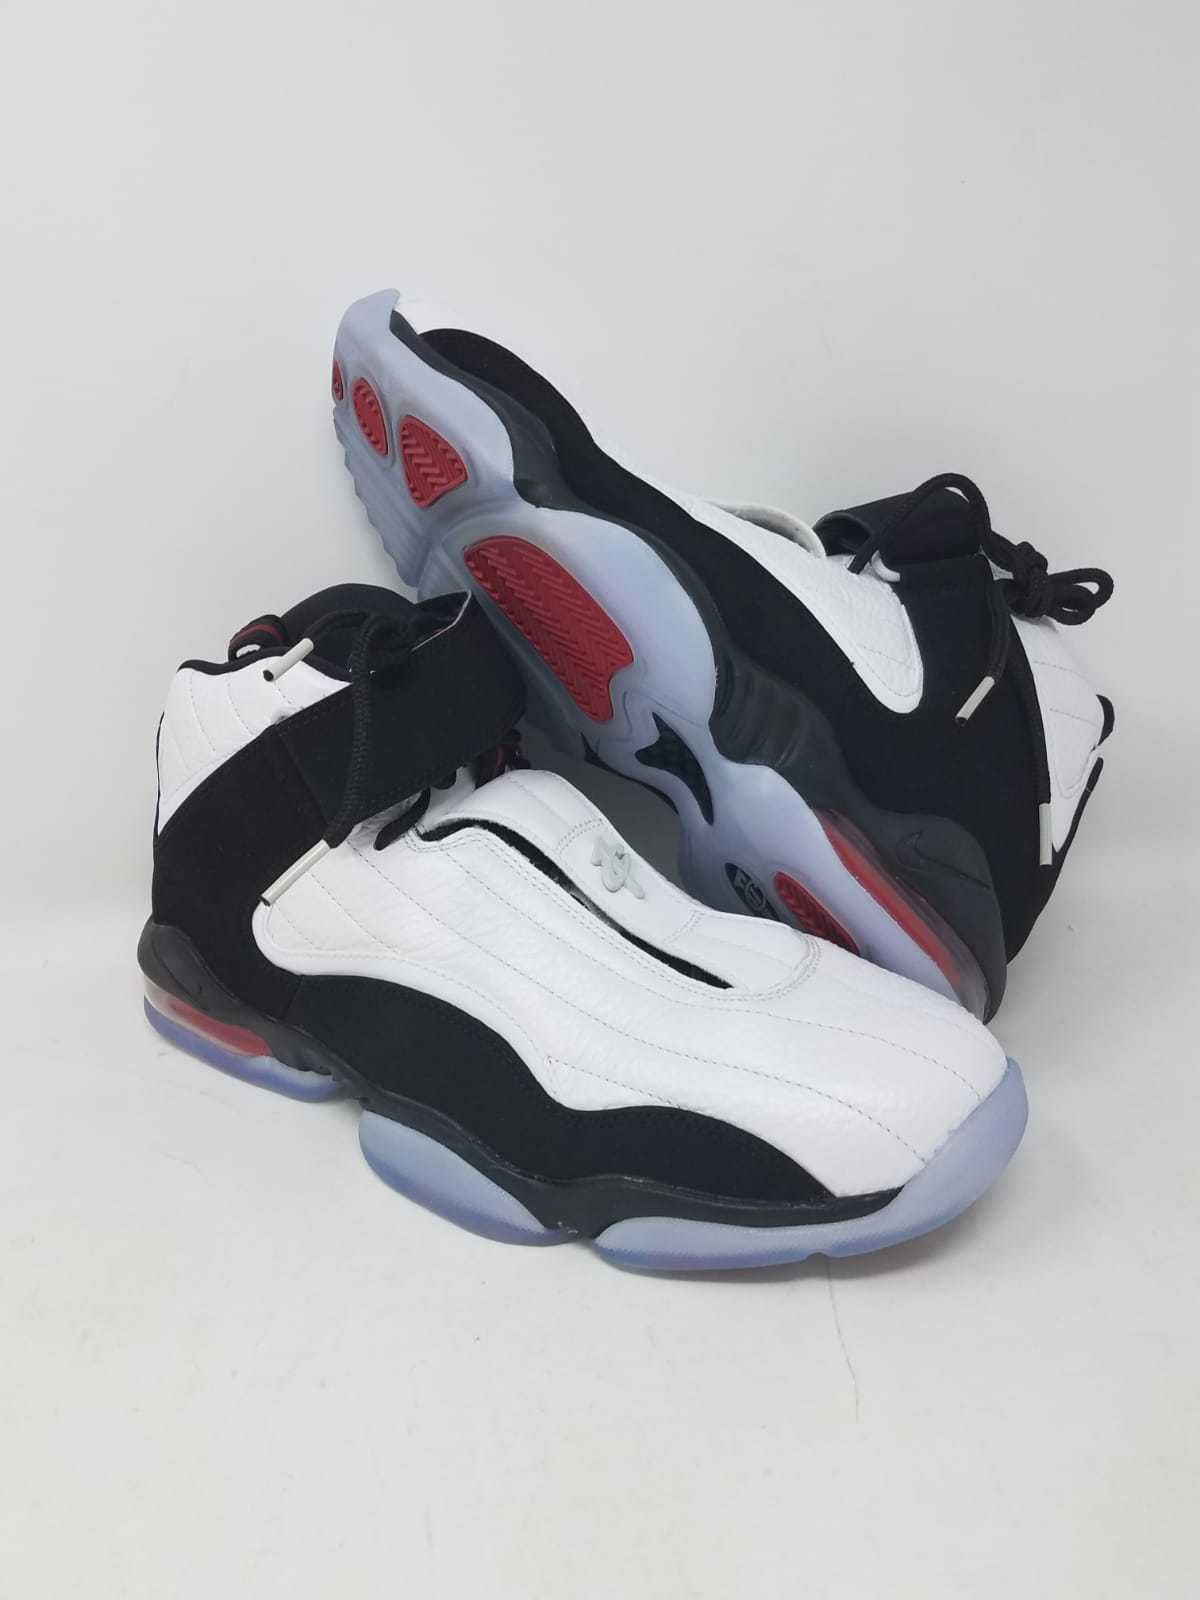 ad4cb50fc31 NIKE AIR PENNY 4 WHITE BLACK TRUE RED 864018 101 ATHLETIC RARE MEN S SZ  10.5 WOB